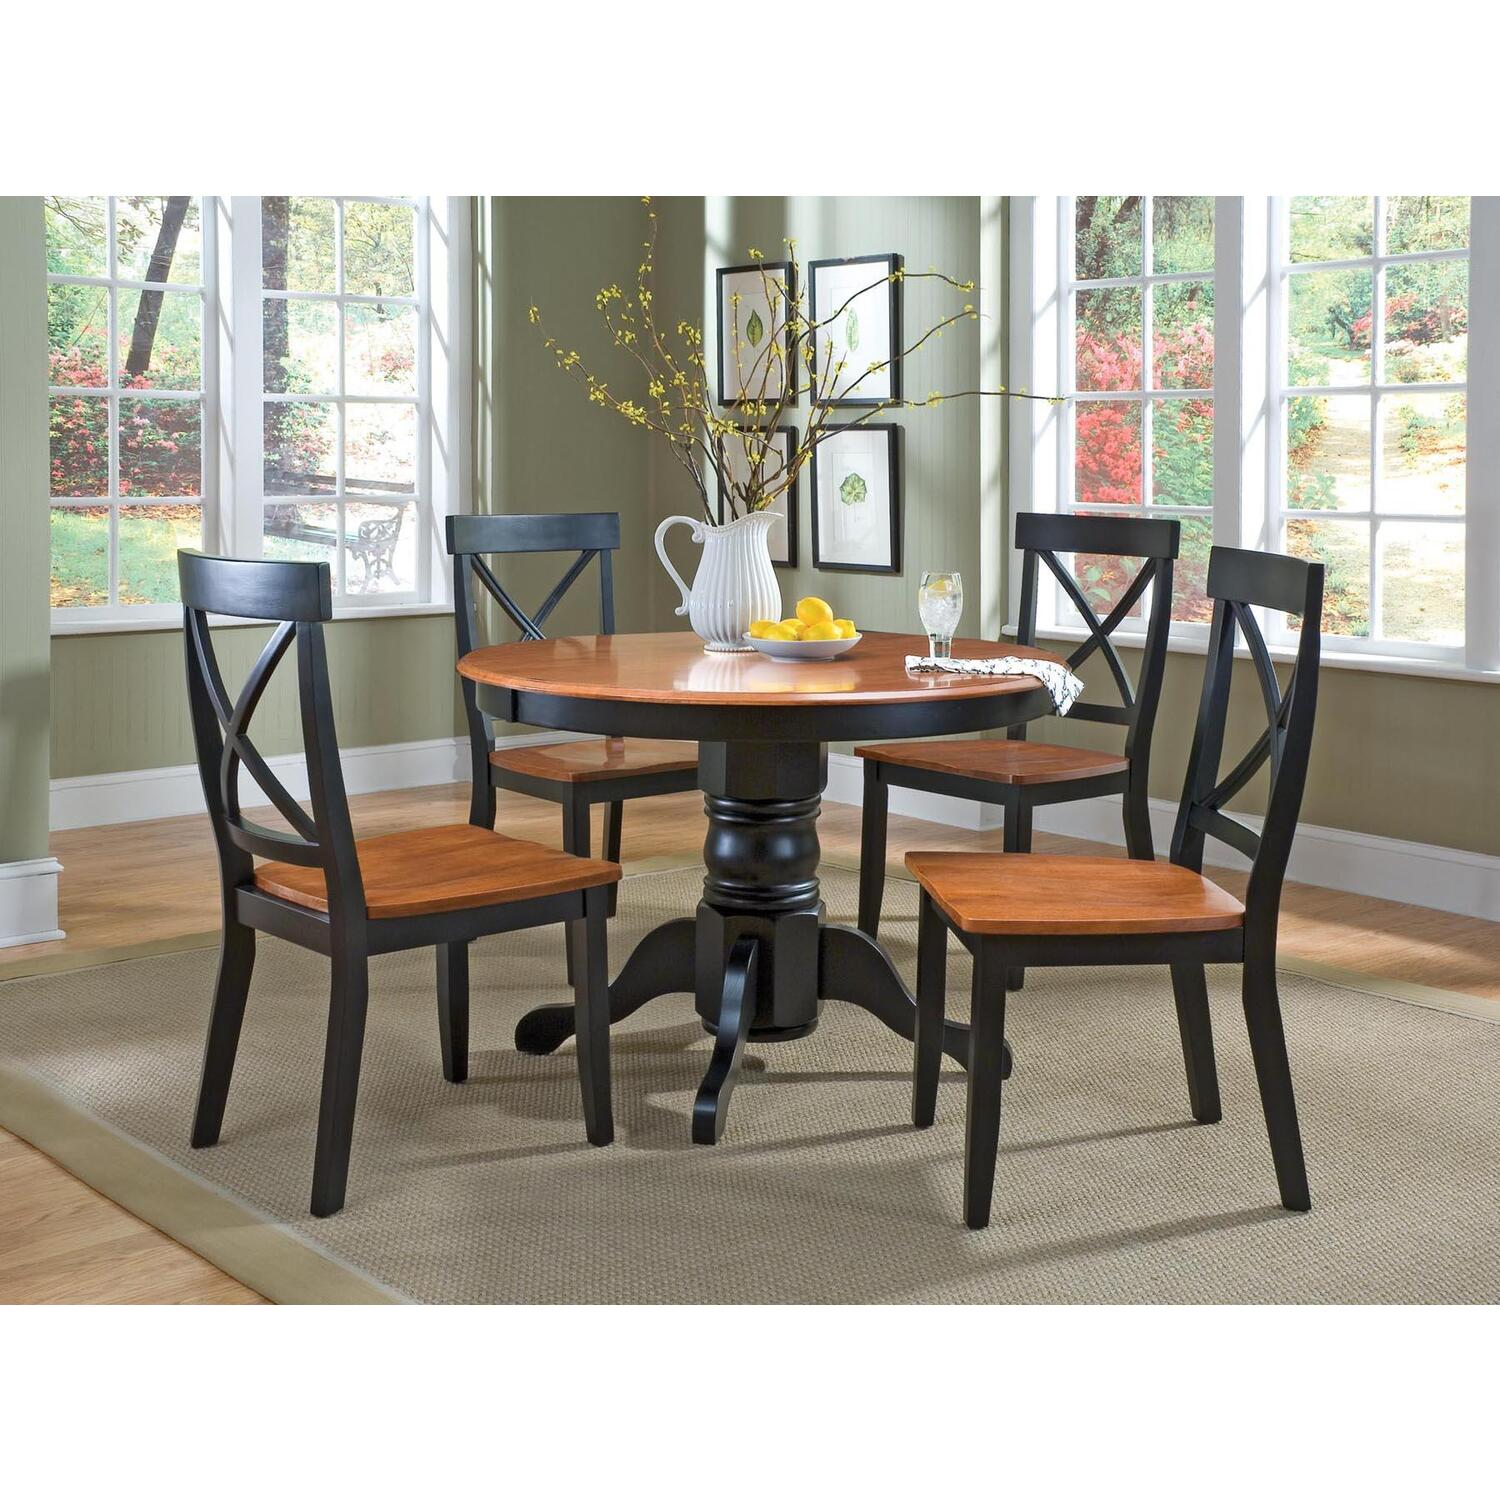 Home styles 5 piece round pedestal dining set by oj commerce - Small space dinette sets set ...